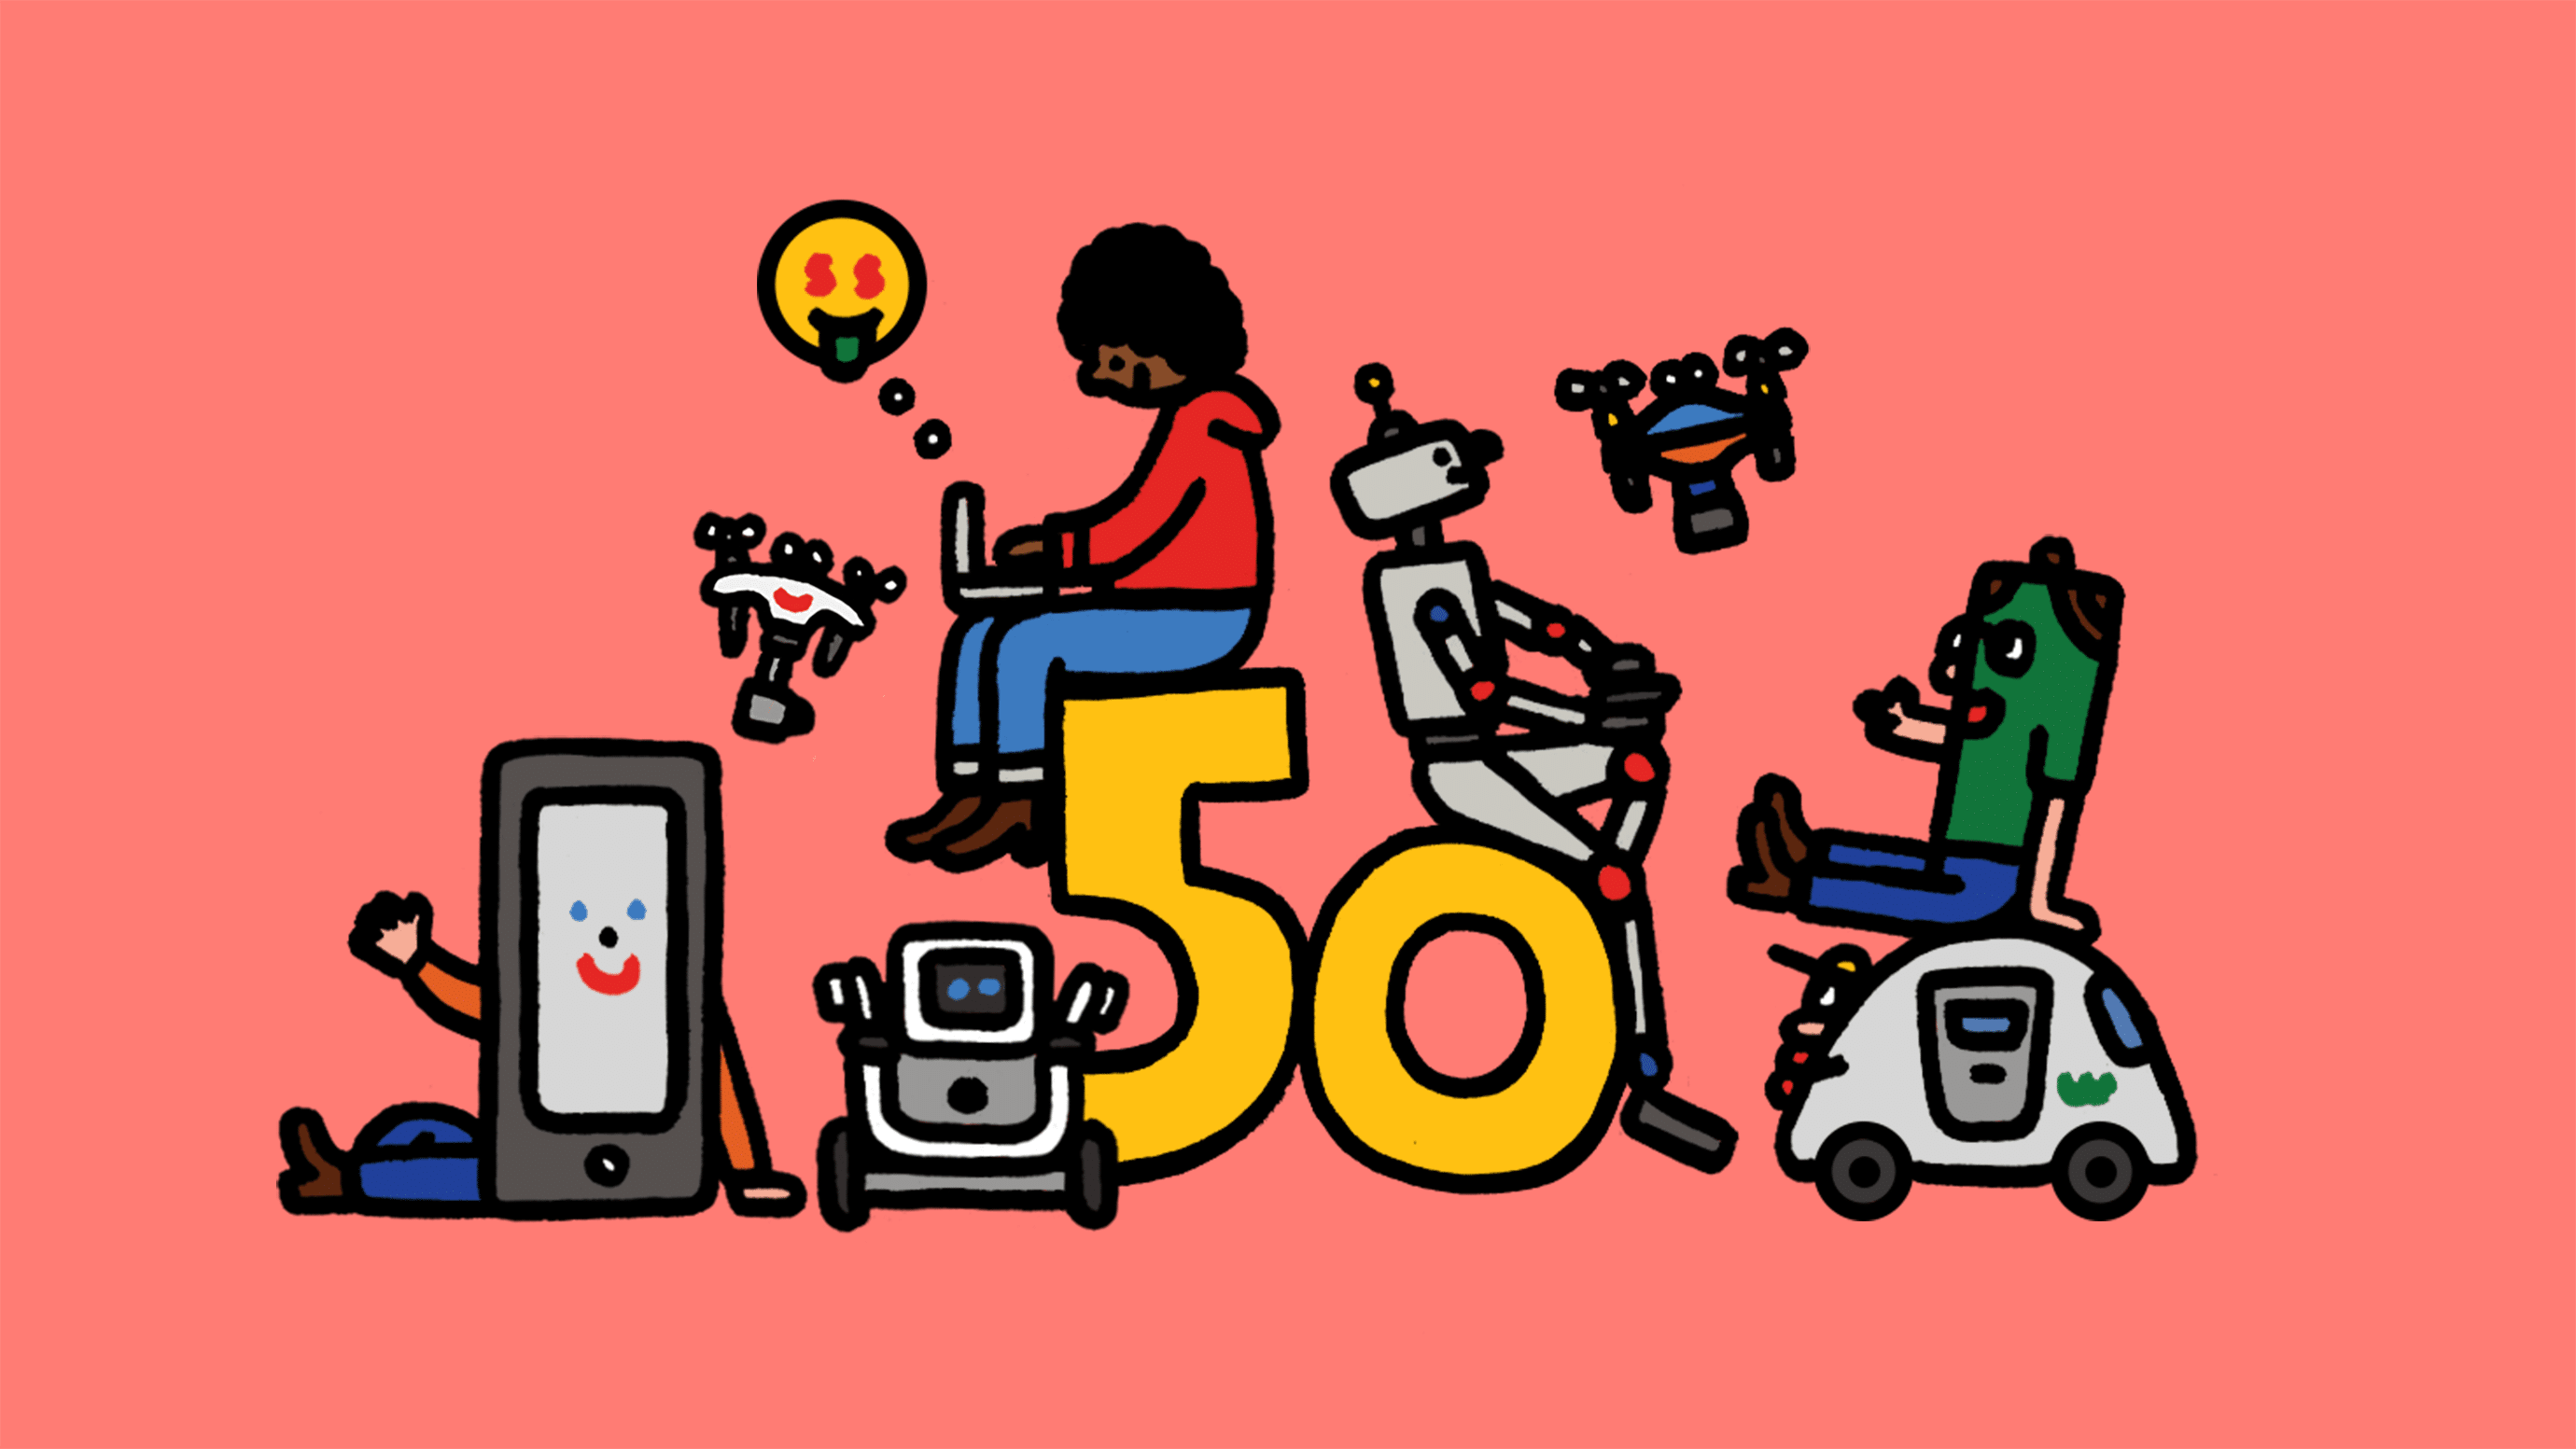 MIT Technology Review 50 Smartest Companies - Udacity